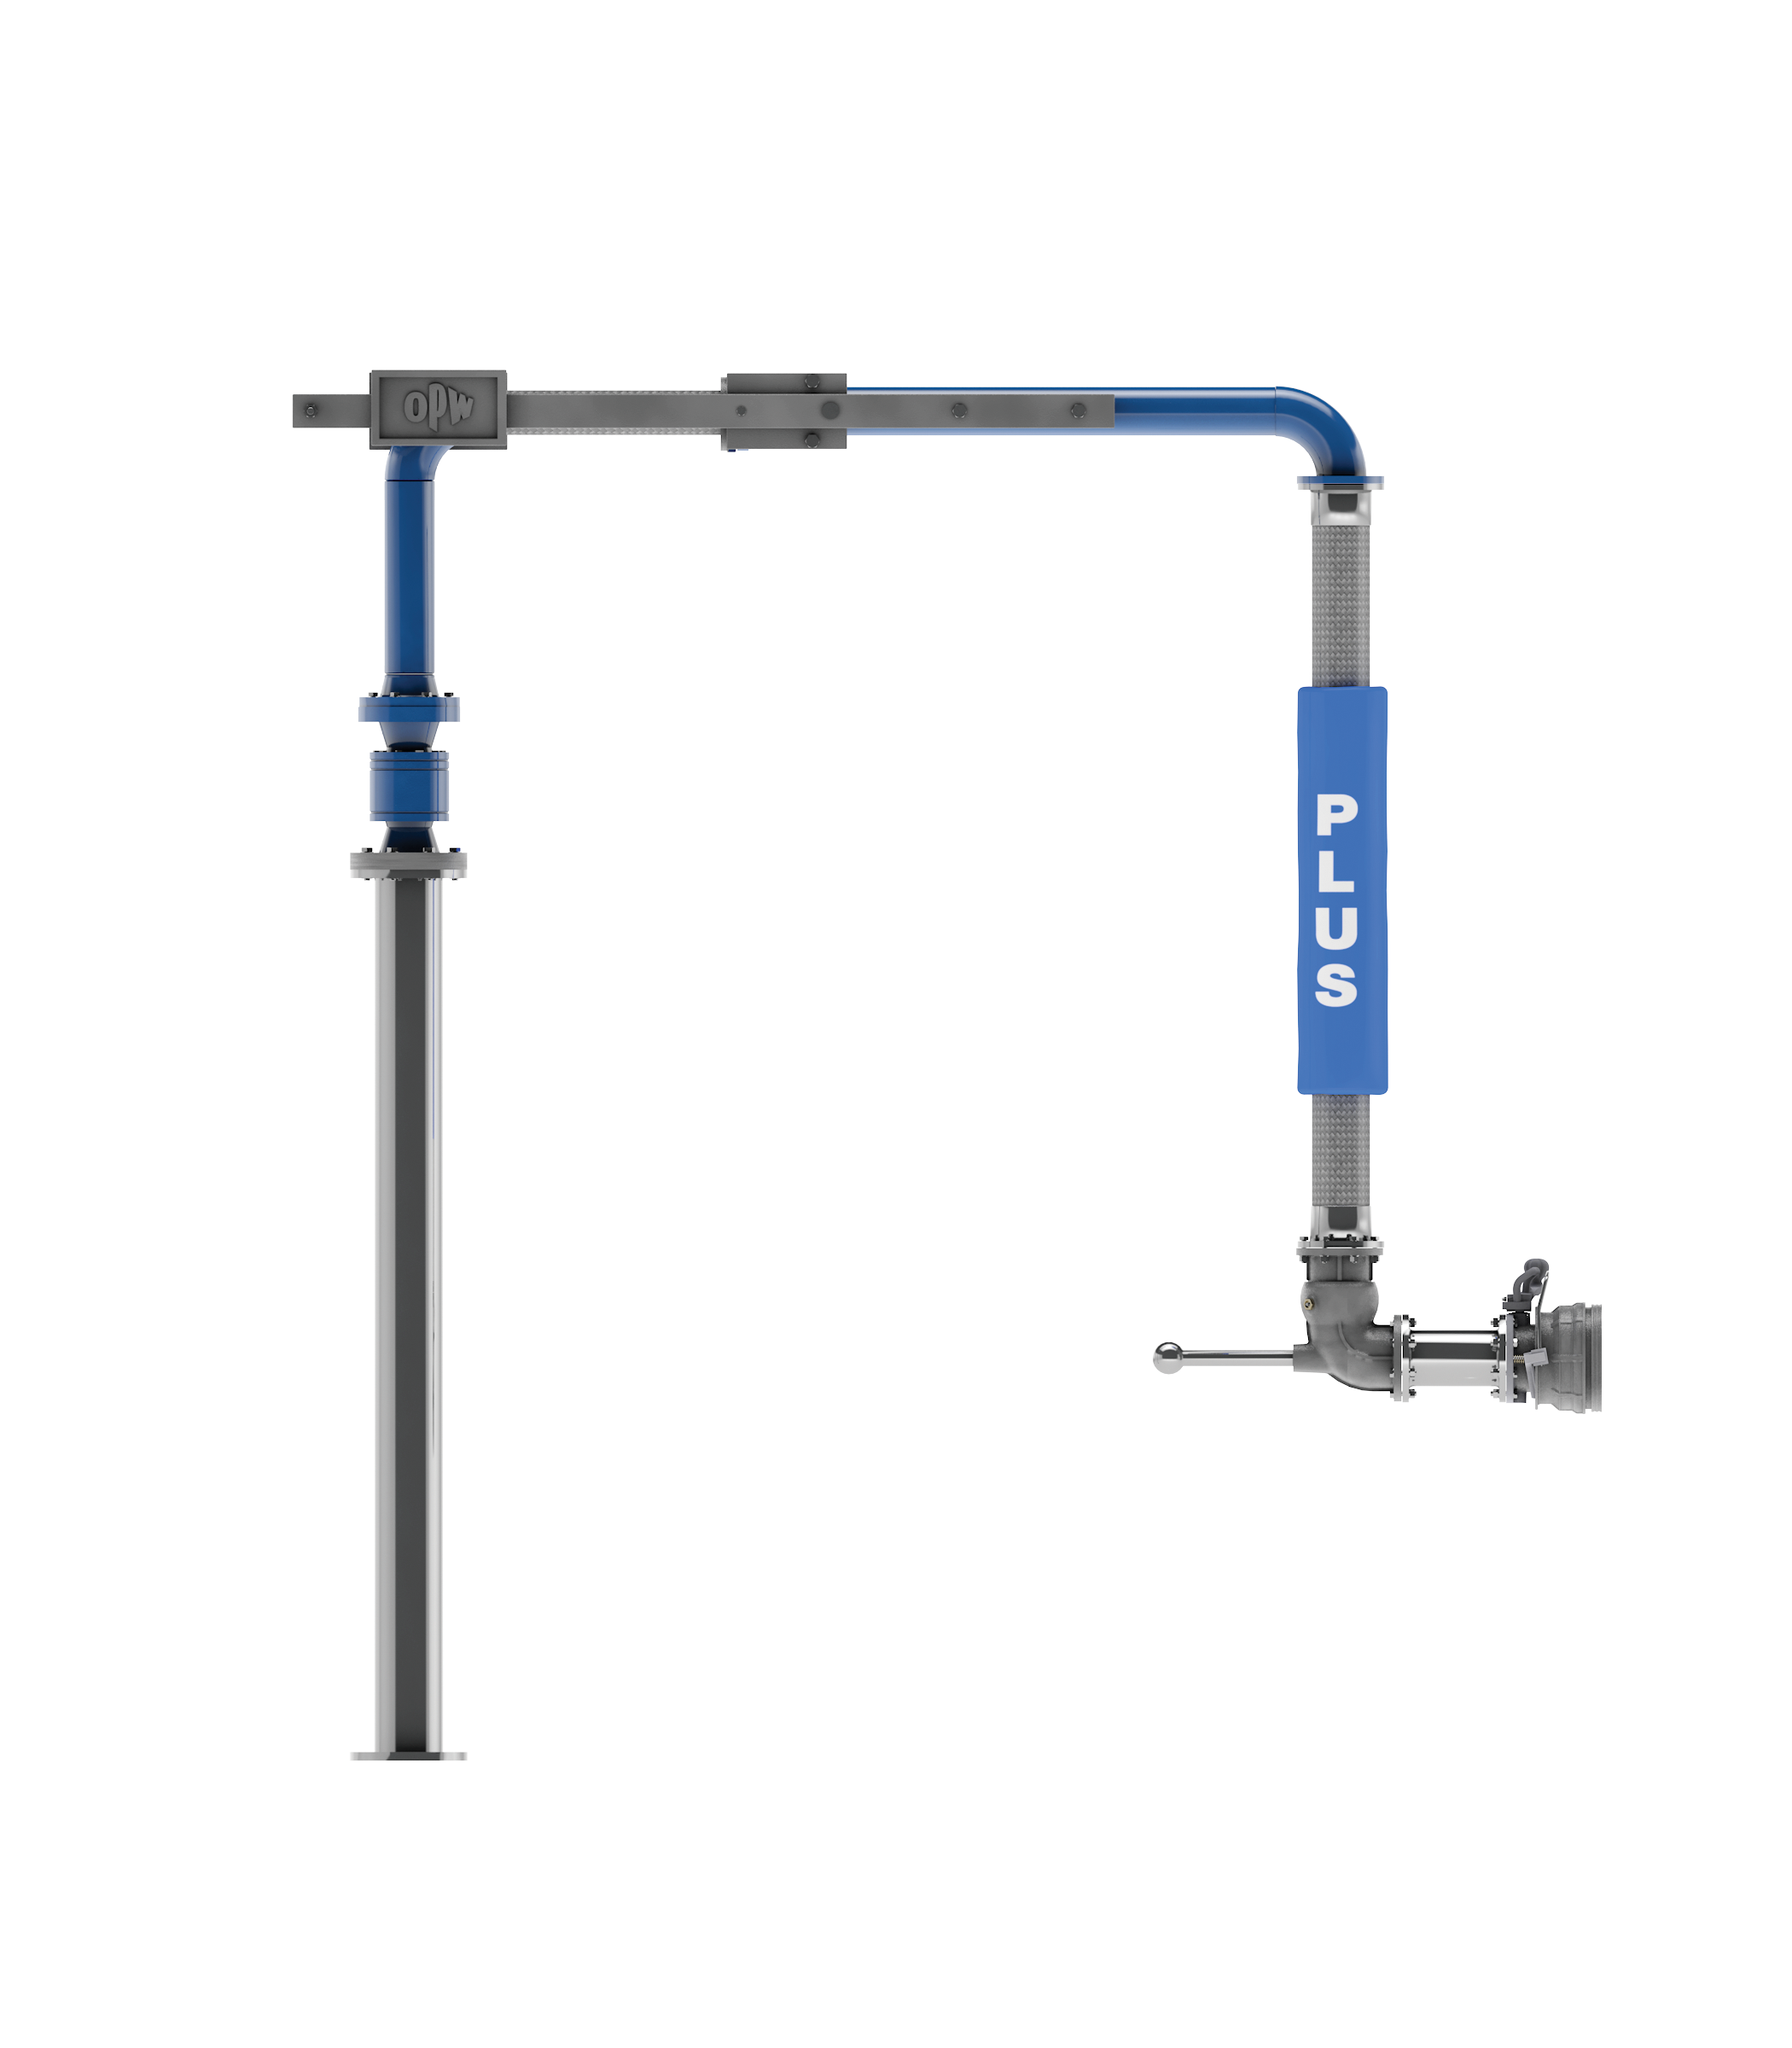 Counterweighted Hose (CWH) Bottom Loading Arm